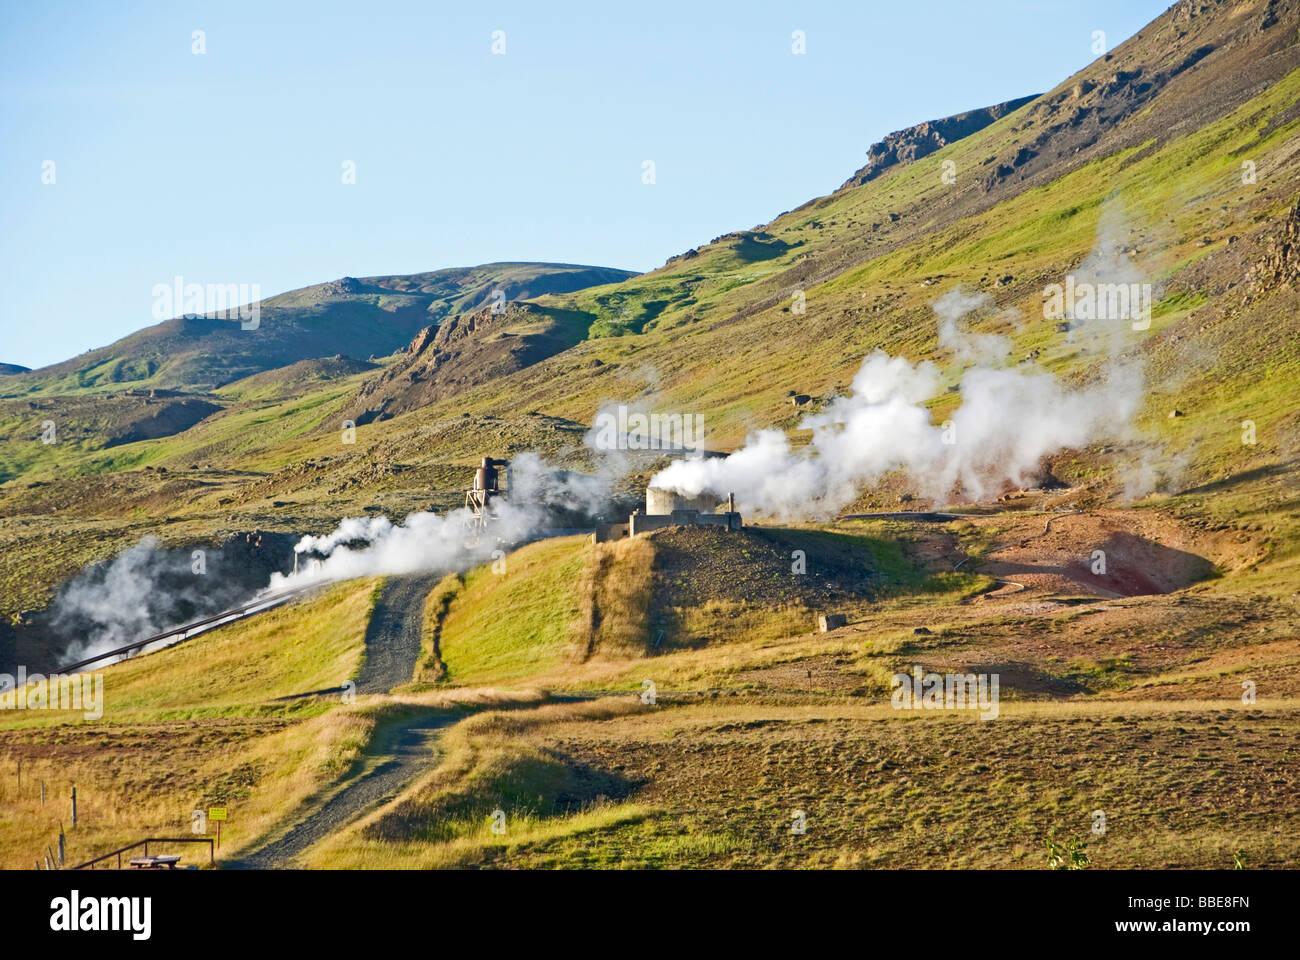 Hot springs, geothermalenergy, high-temperature area, Iceland, Europe - Stock Image